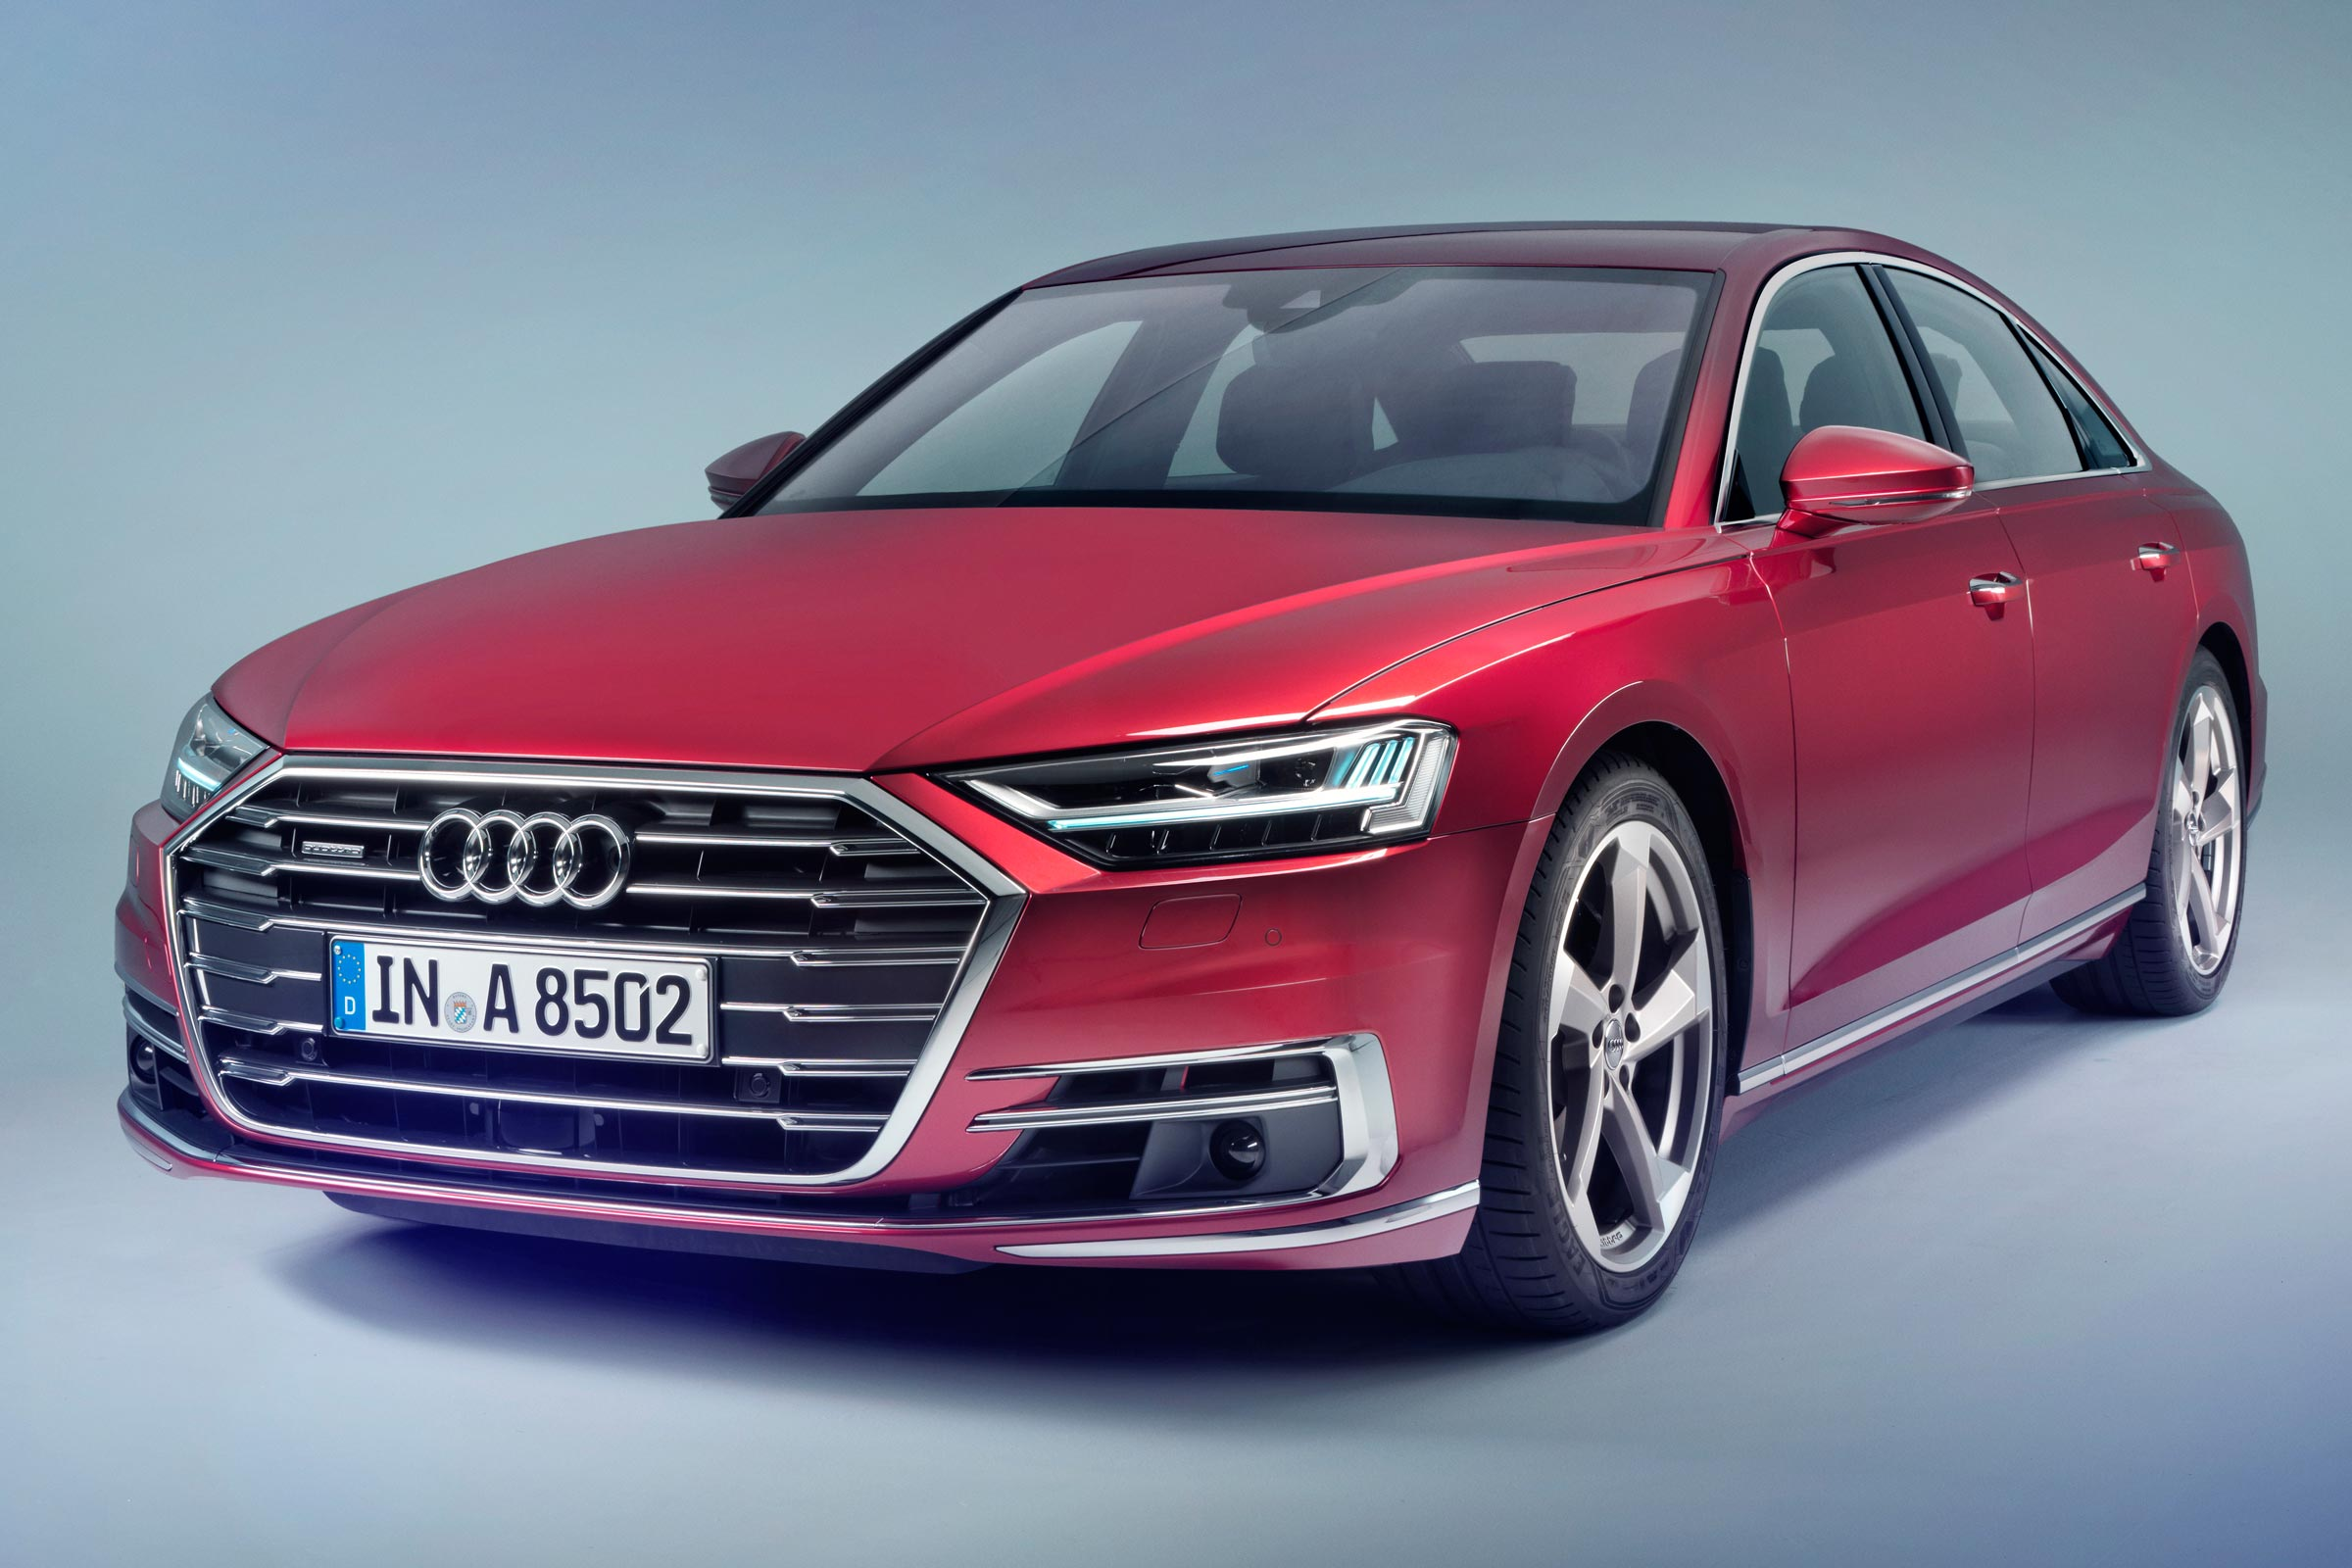 New 2018 Audi A8: prices, specs and release date | Carbuyer